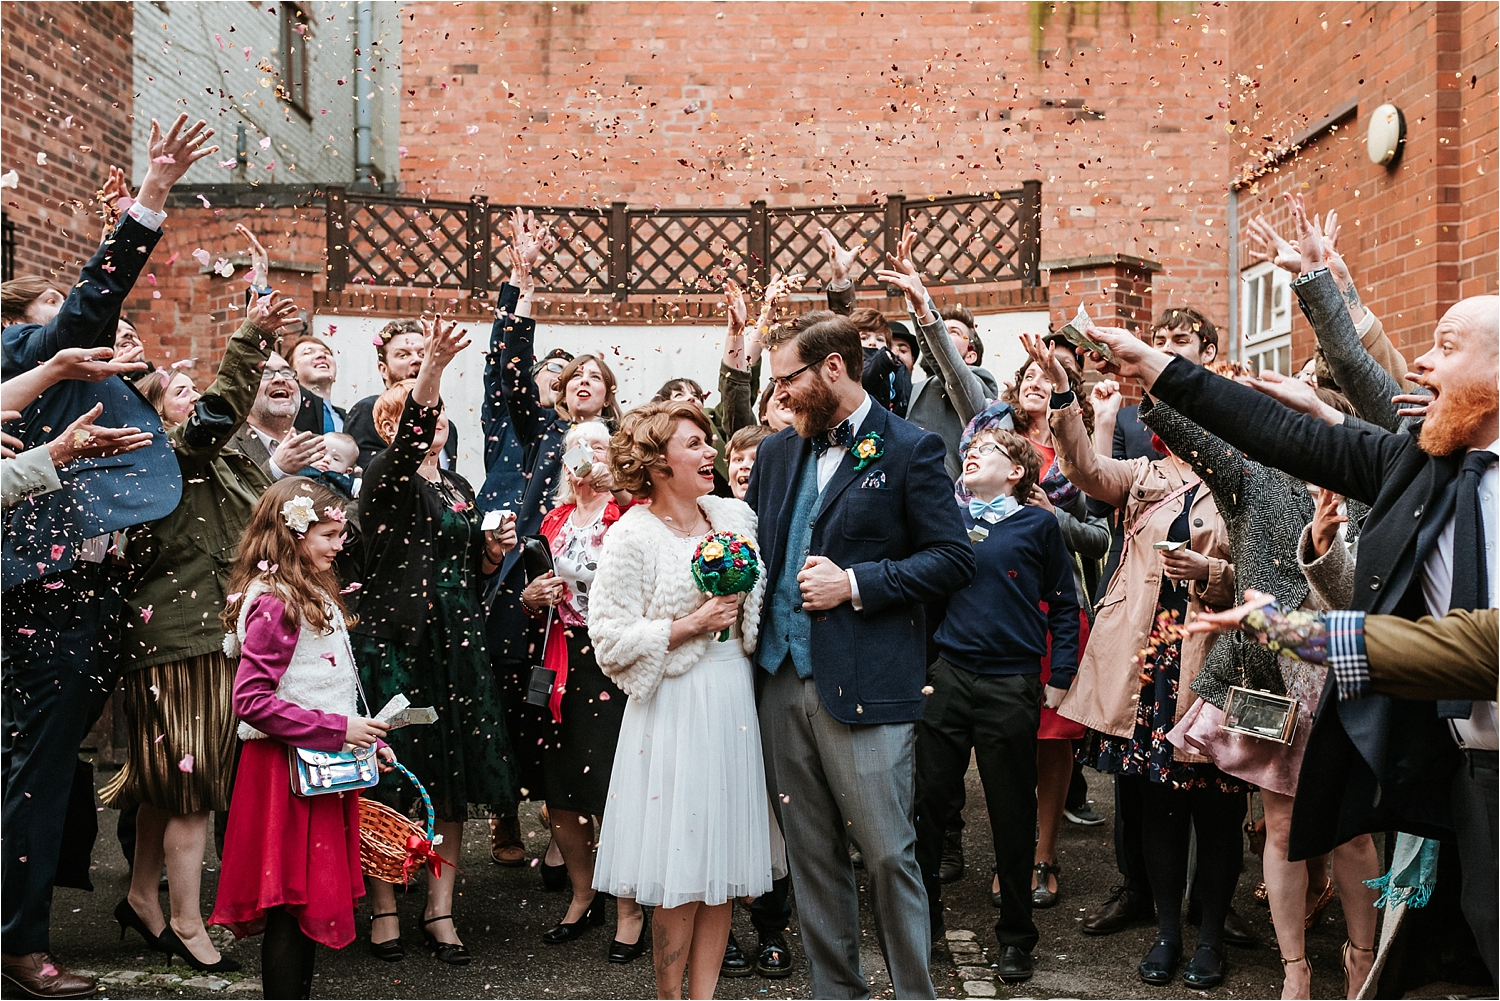 Victoria-Ben-The-West-Mill-darley-abbey-natural-relaxed-documentary-wedding-photography-photographer-Derby-Nottingham-Derbyshire-Nottinghamshire-Leicestershire-Lincolnshire-East-Midlands_0138.jpg